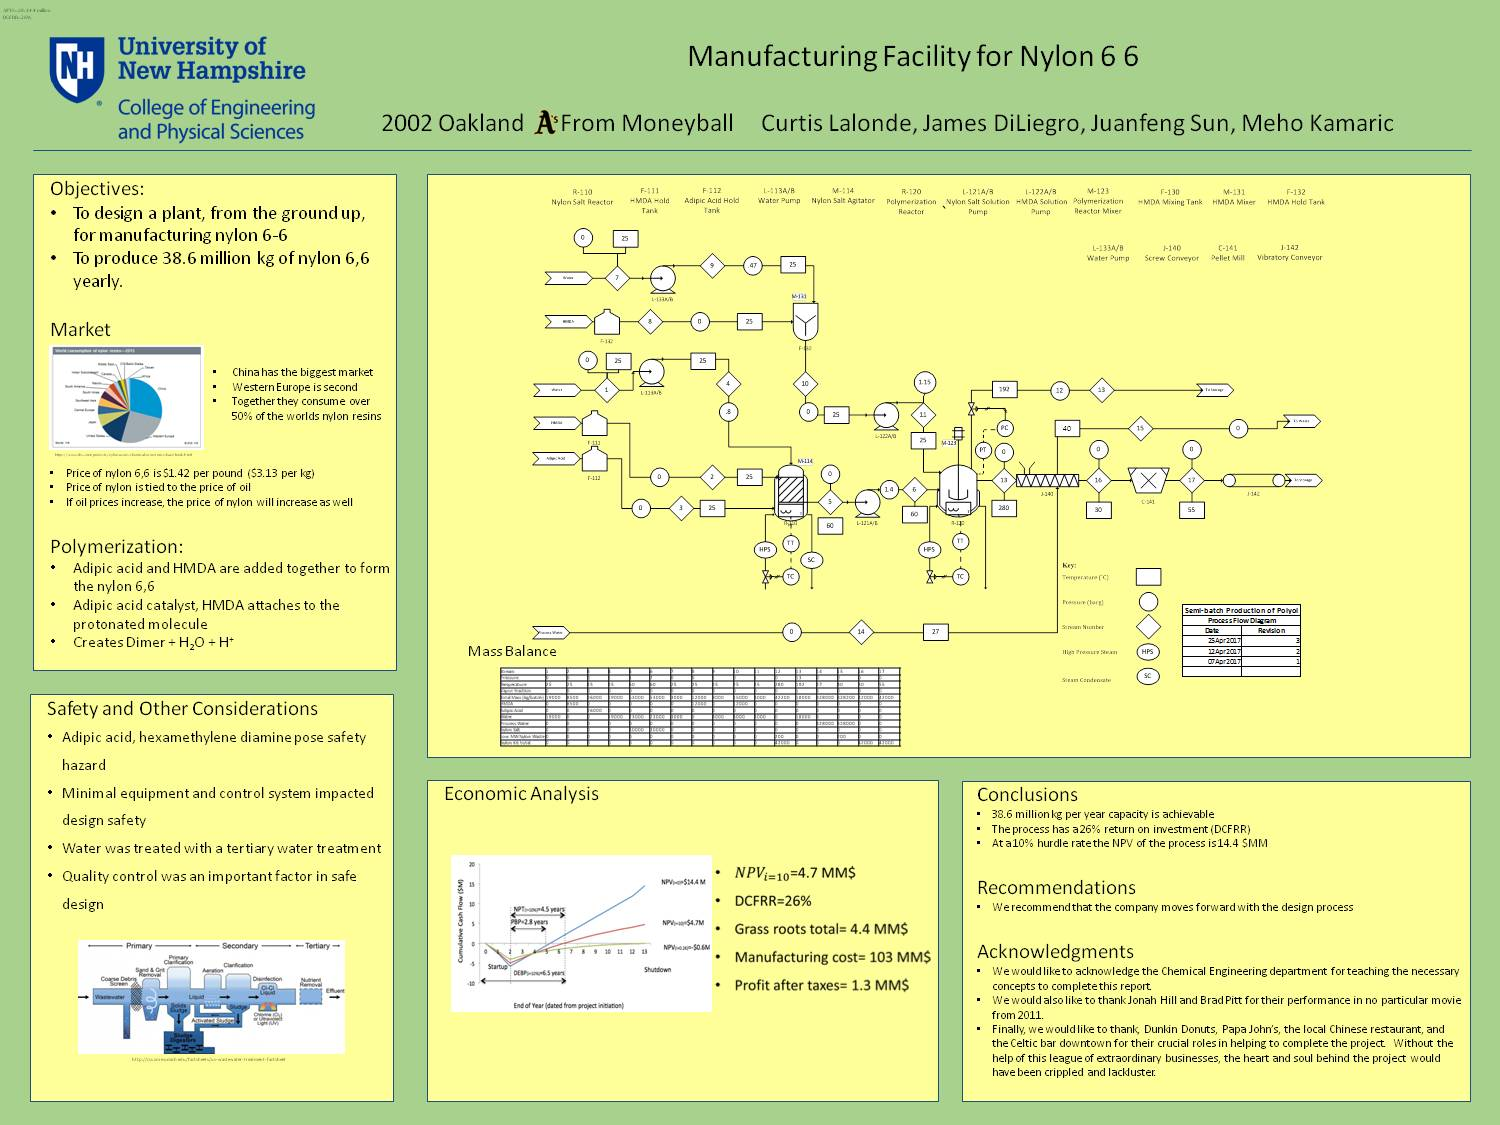 Manufacturing Facility For Nylon 6,6 by jmsdiliegro